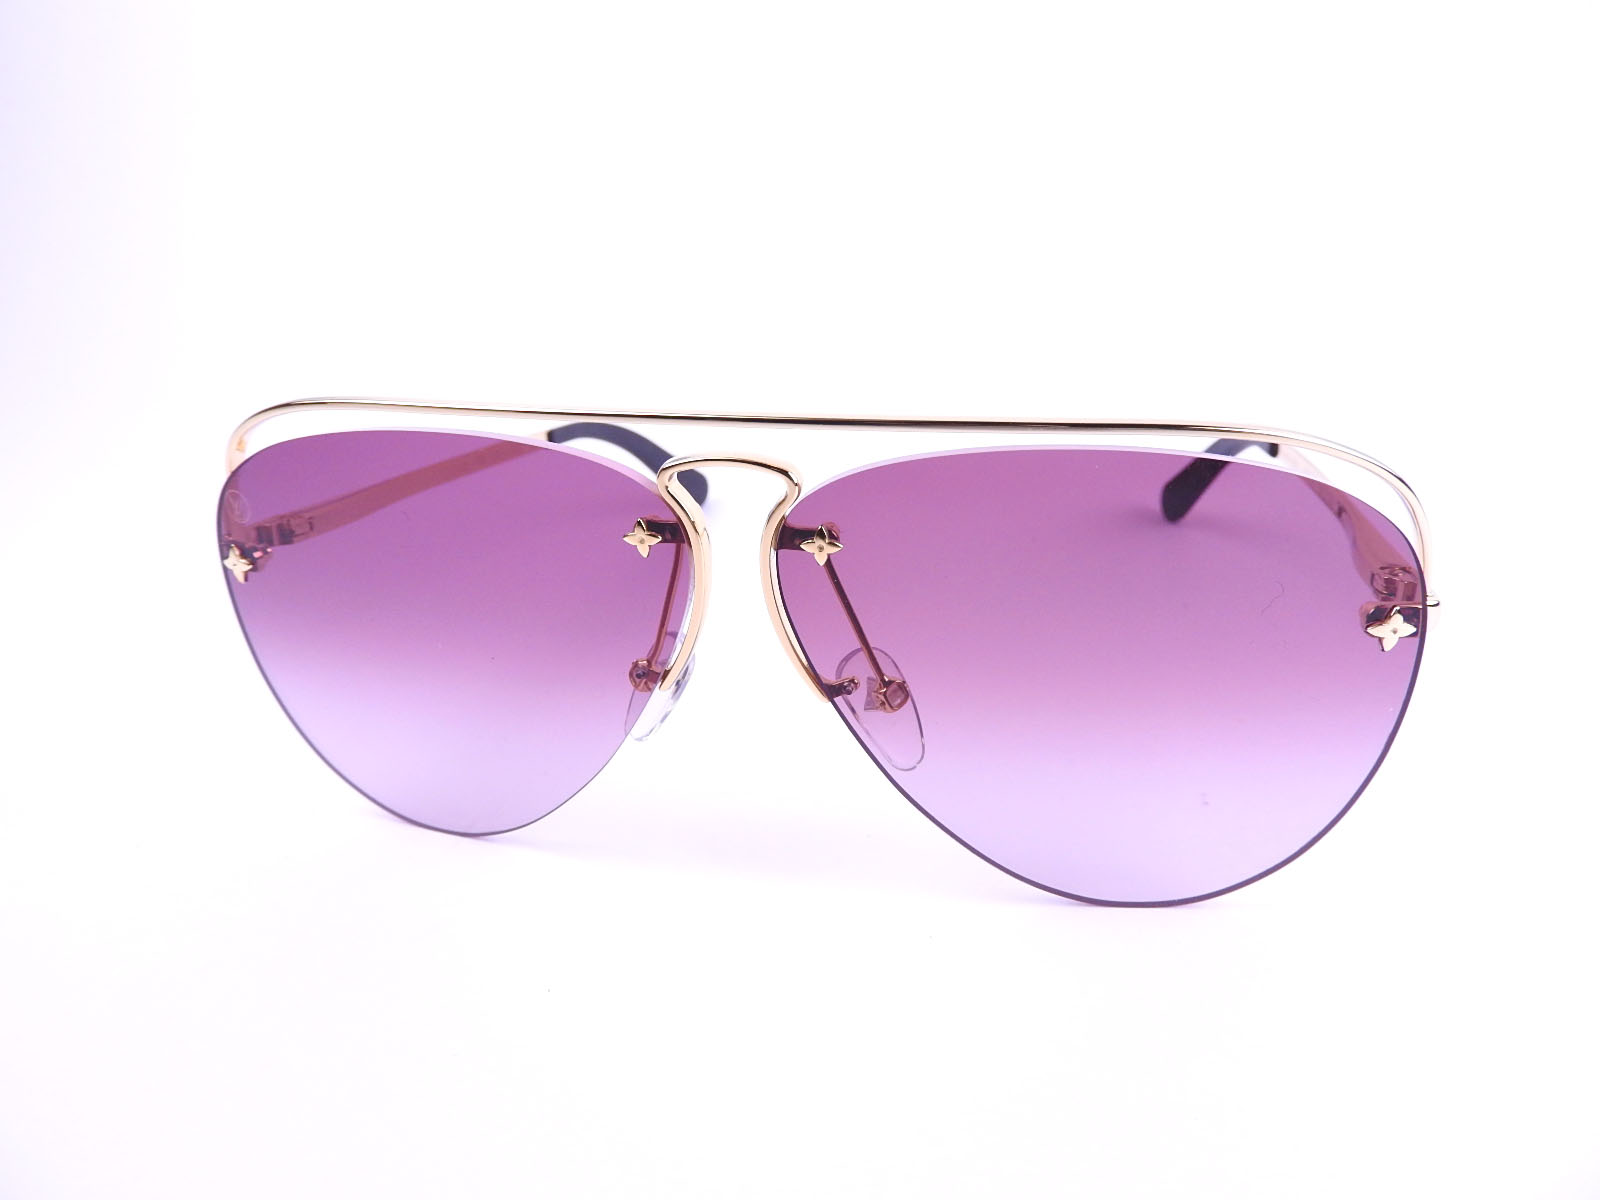 25135444f4 Auth LOUIS VUITTON Grease Aubergine Women s Sunglasses Z1044E GP Gold Pink  2018 Year A-8968